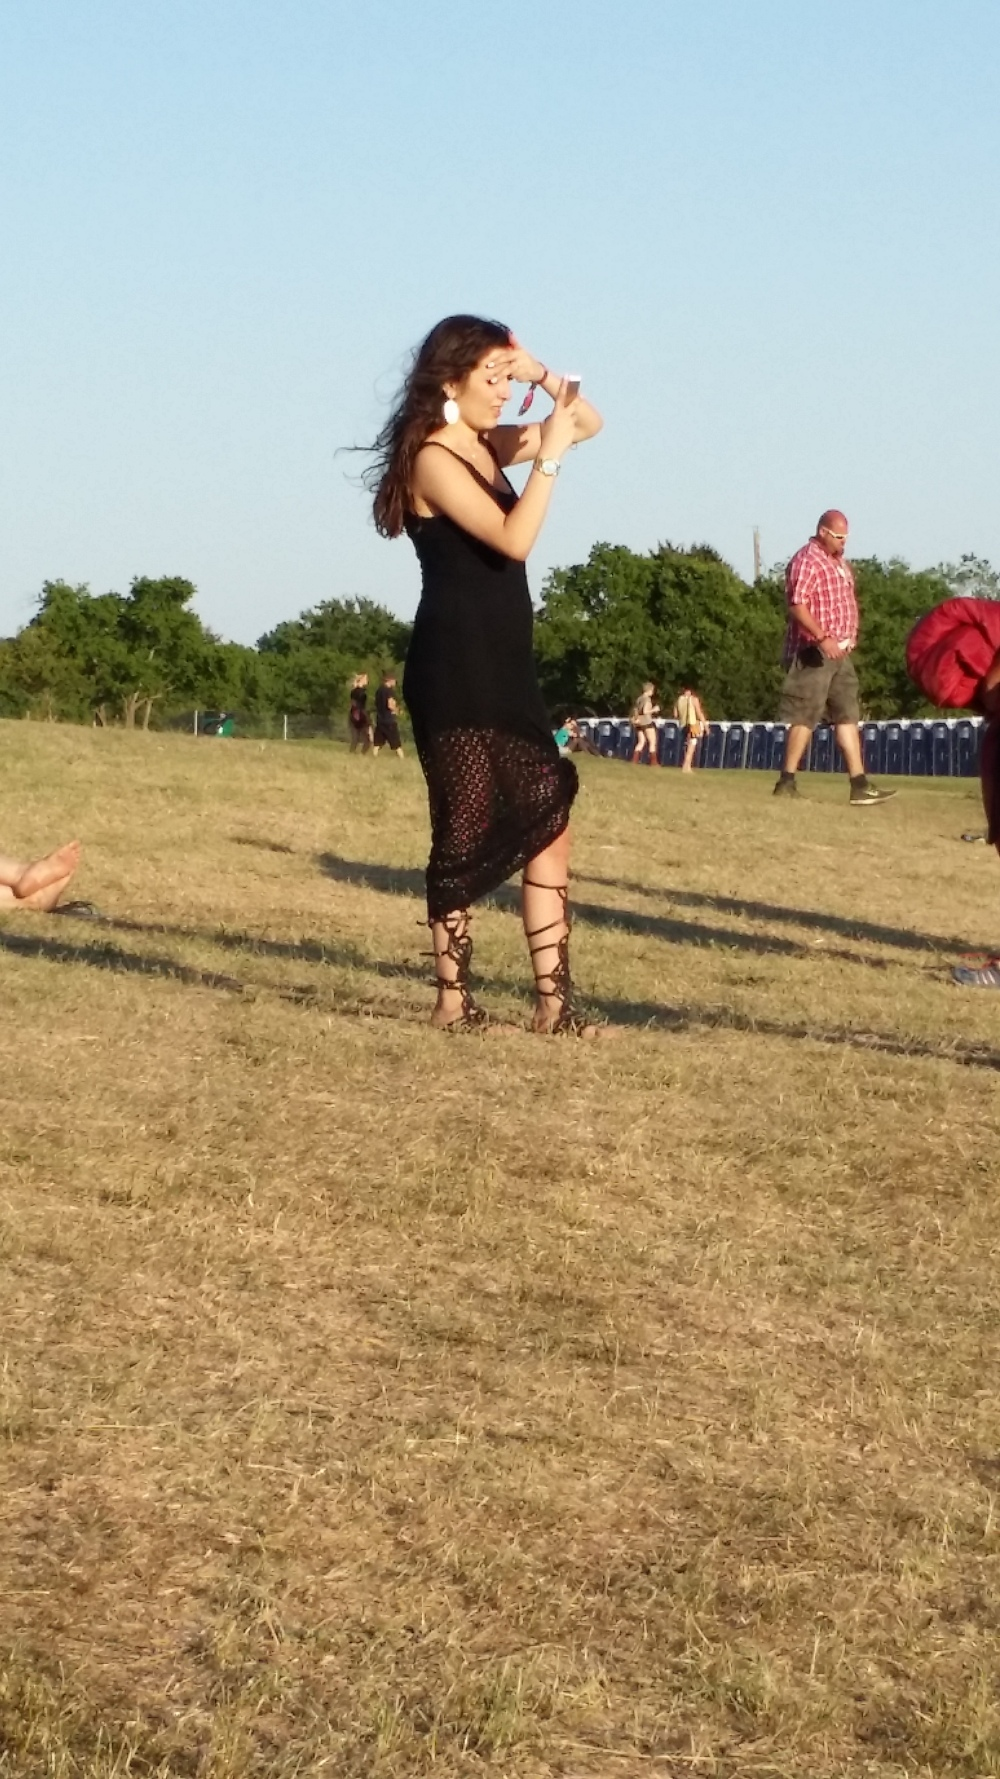 Black mesh dress, taking an outfit shot of her friend.